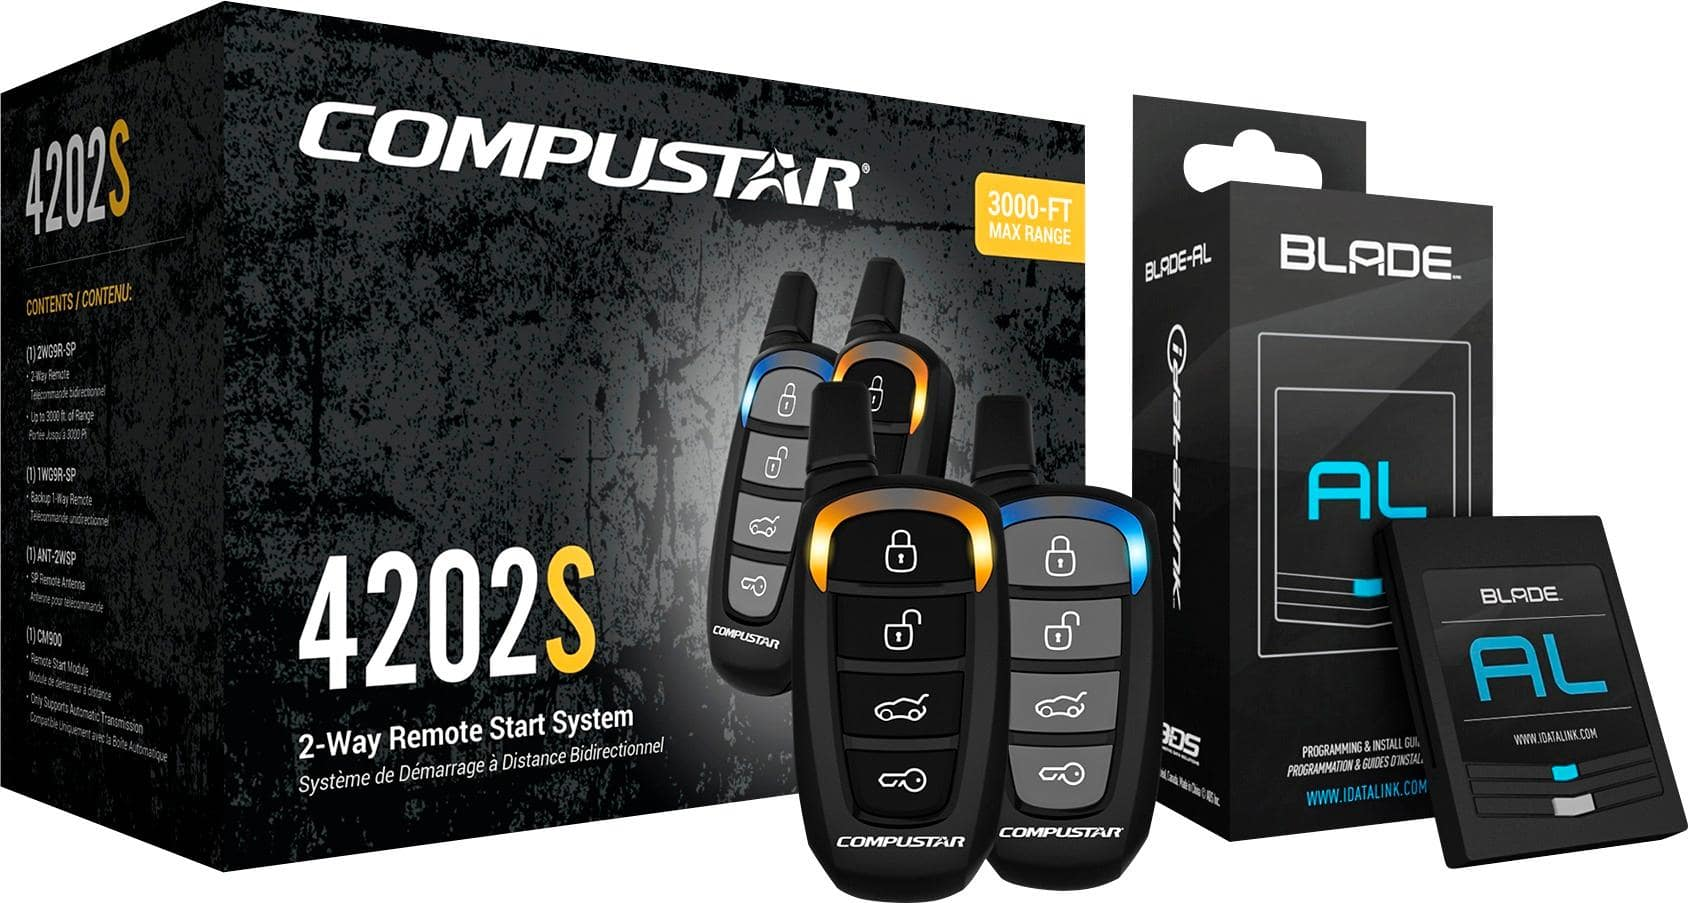 Compustar - 2-Way Remote Start System - Black with Geek Squad Installation and Directed Electronics - Ball Bearing Tilt Switch at Best buy $200